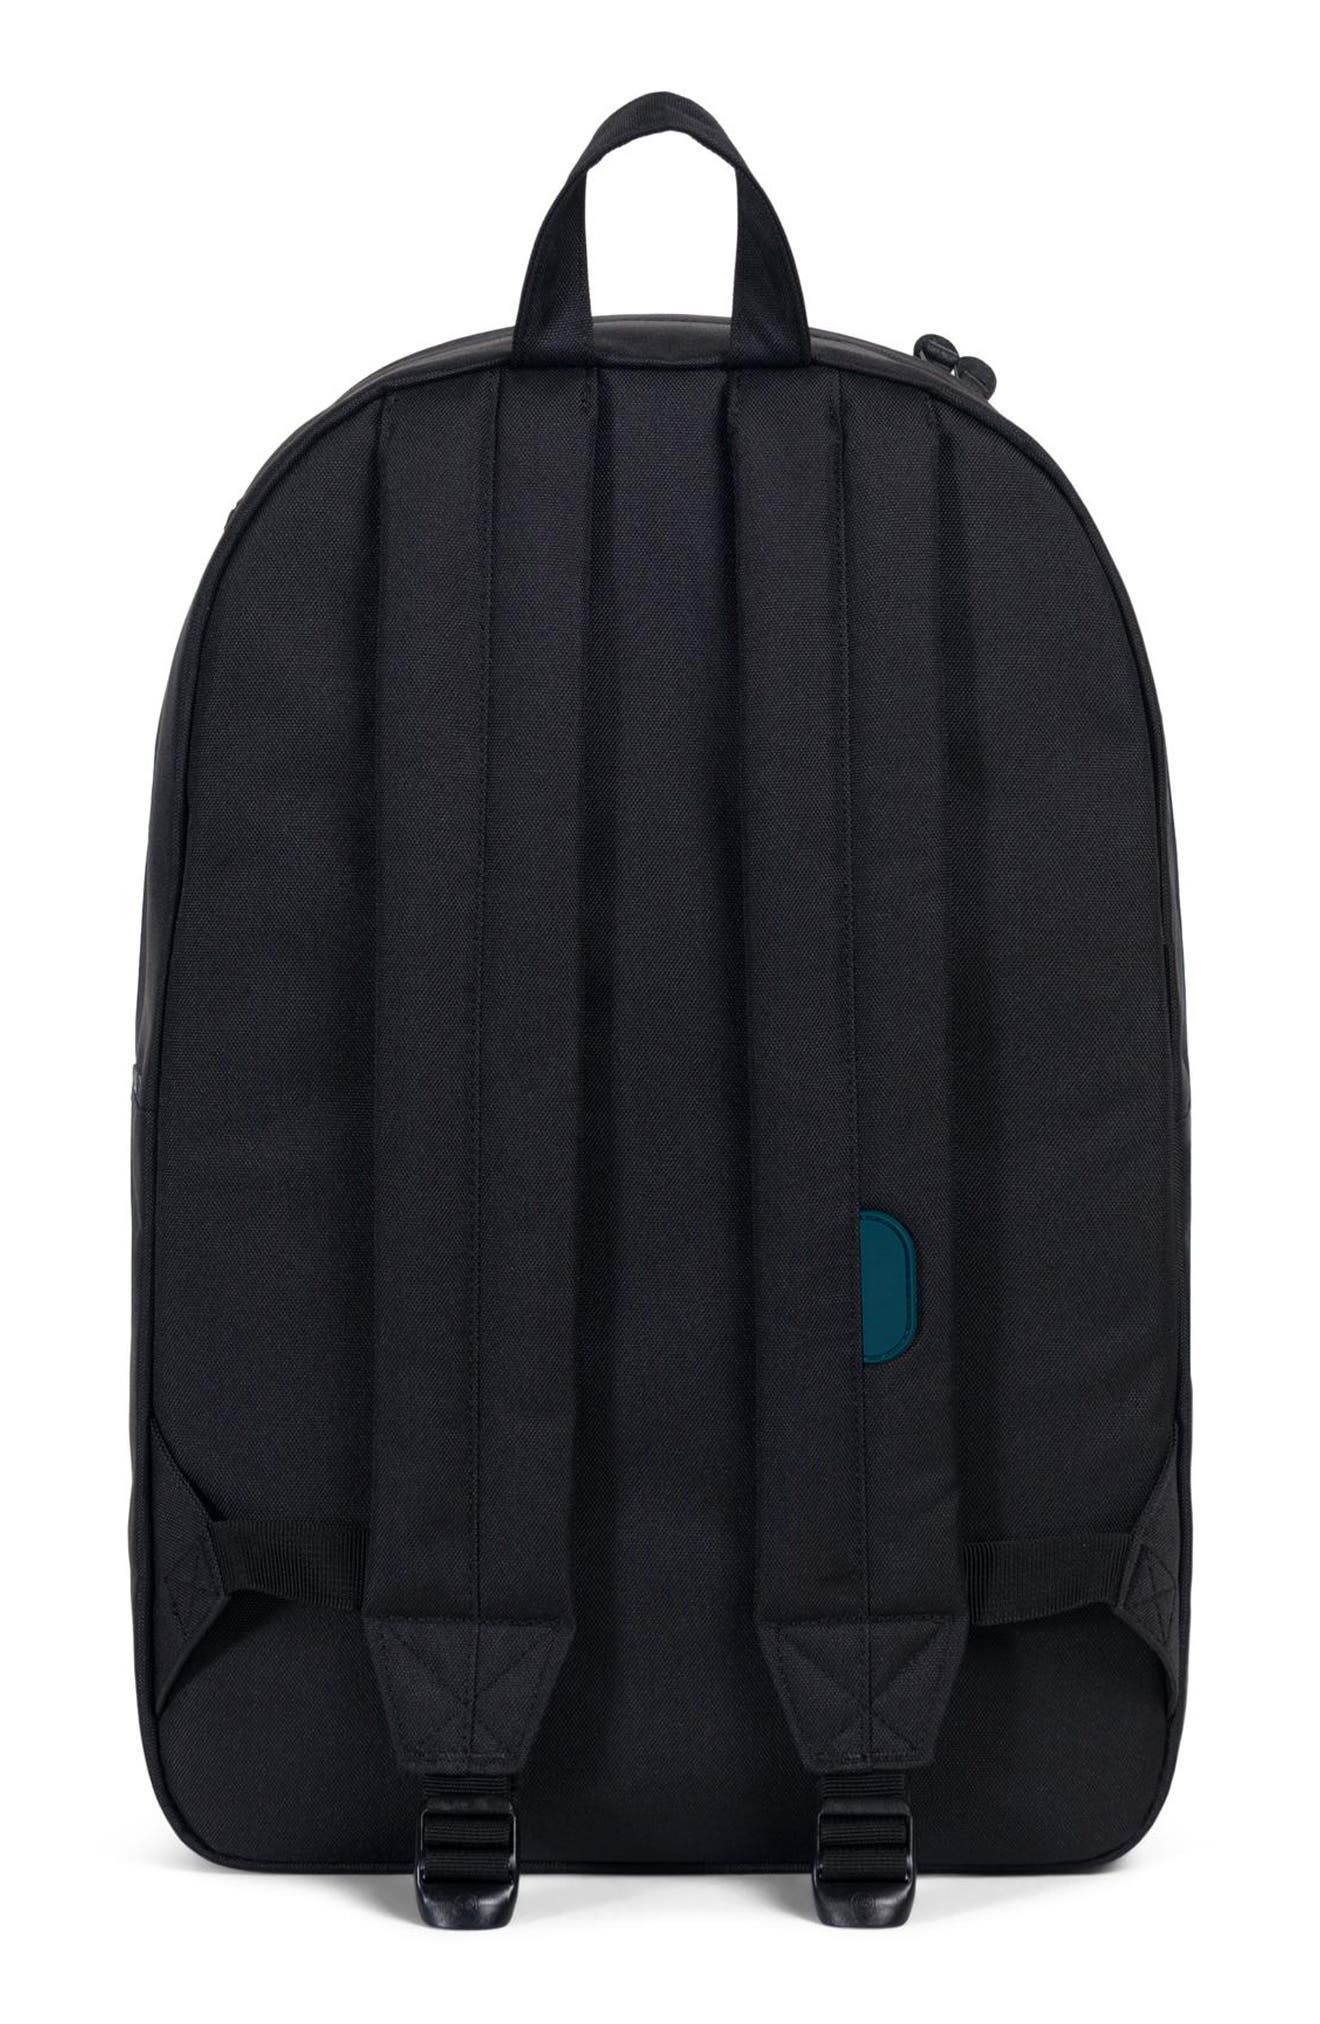 Heritage Backpack,                             Alternate thumbnail 2, color,                             001